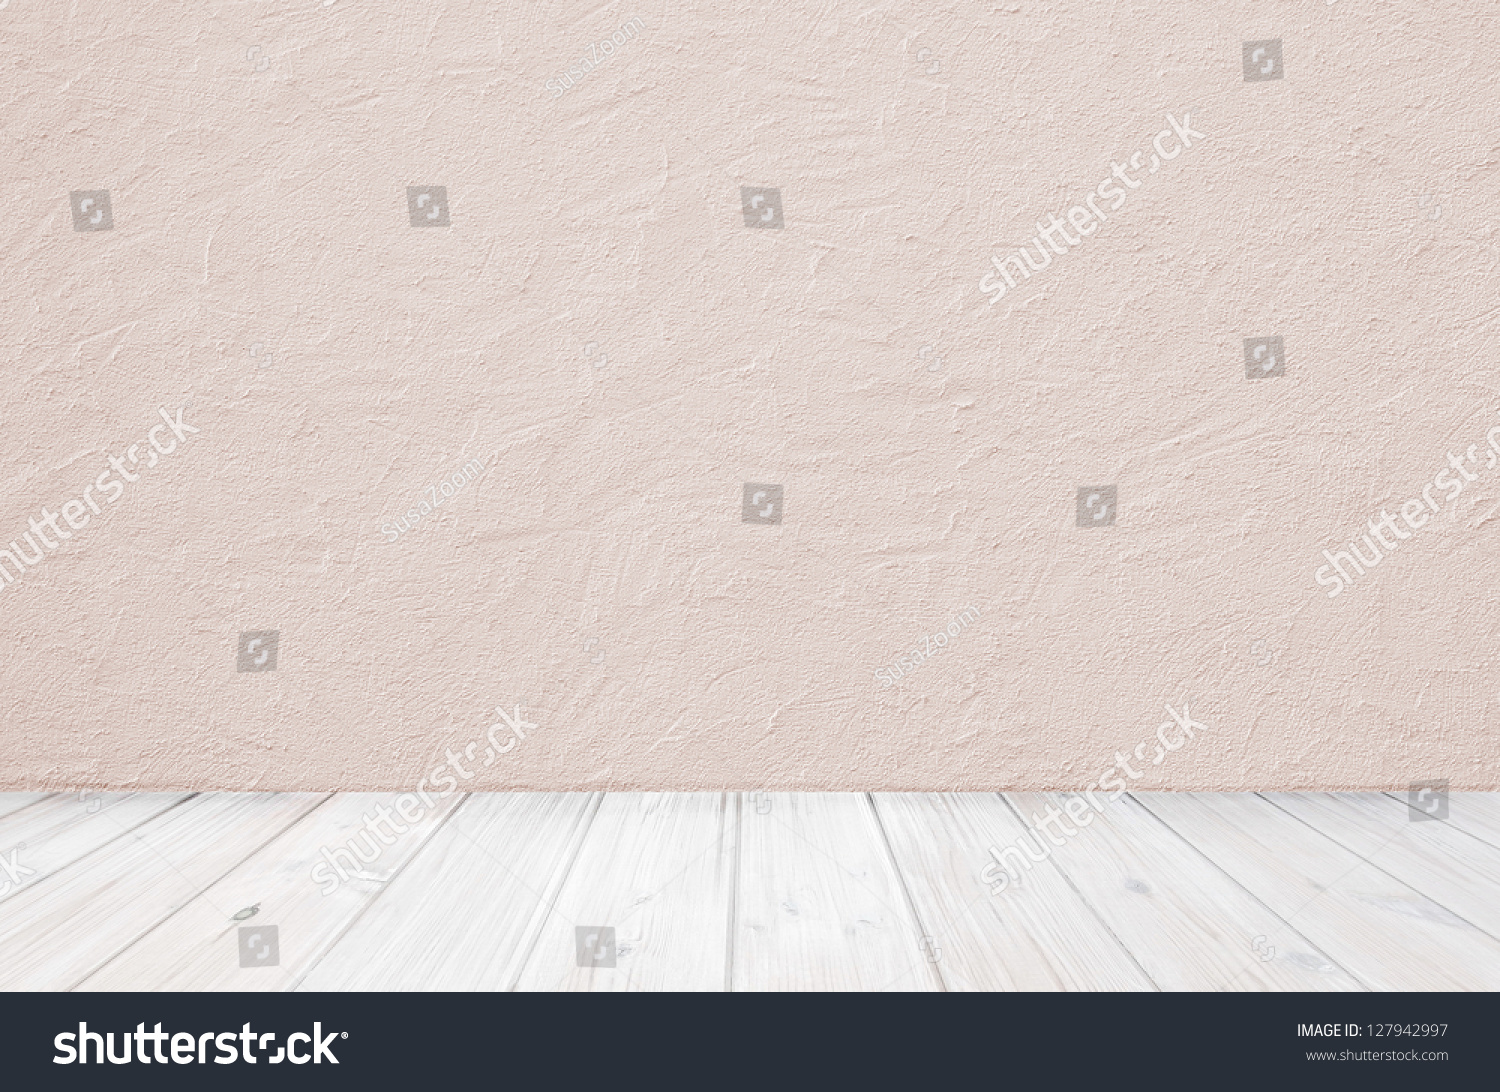 Royalty Free Stock Illustration Of Old Rose Colored Stone Wall